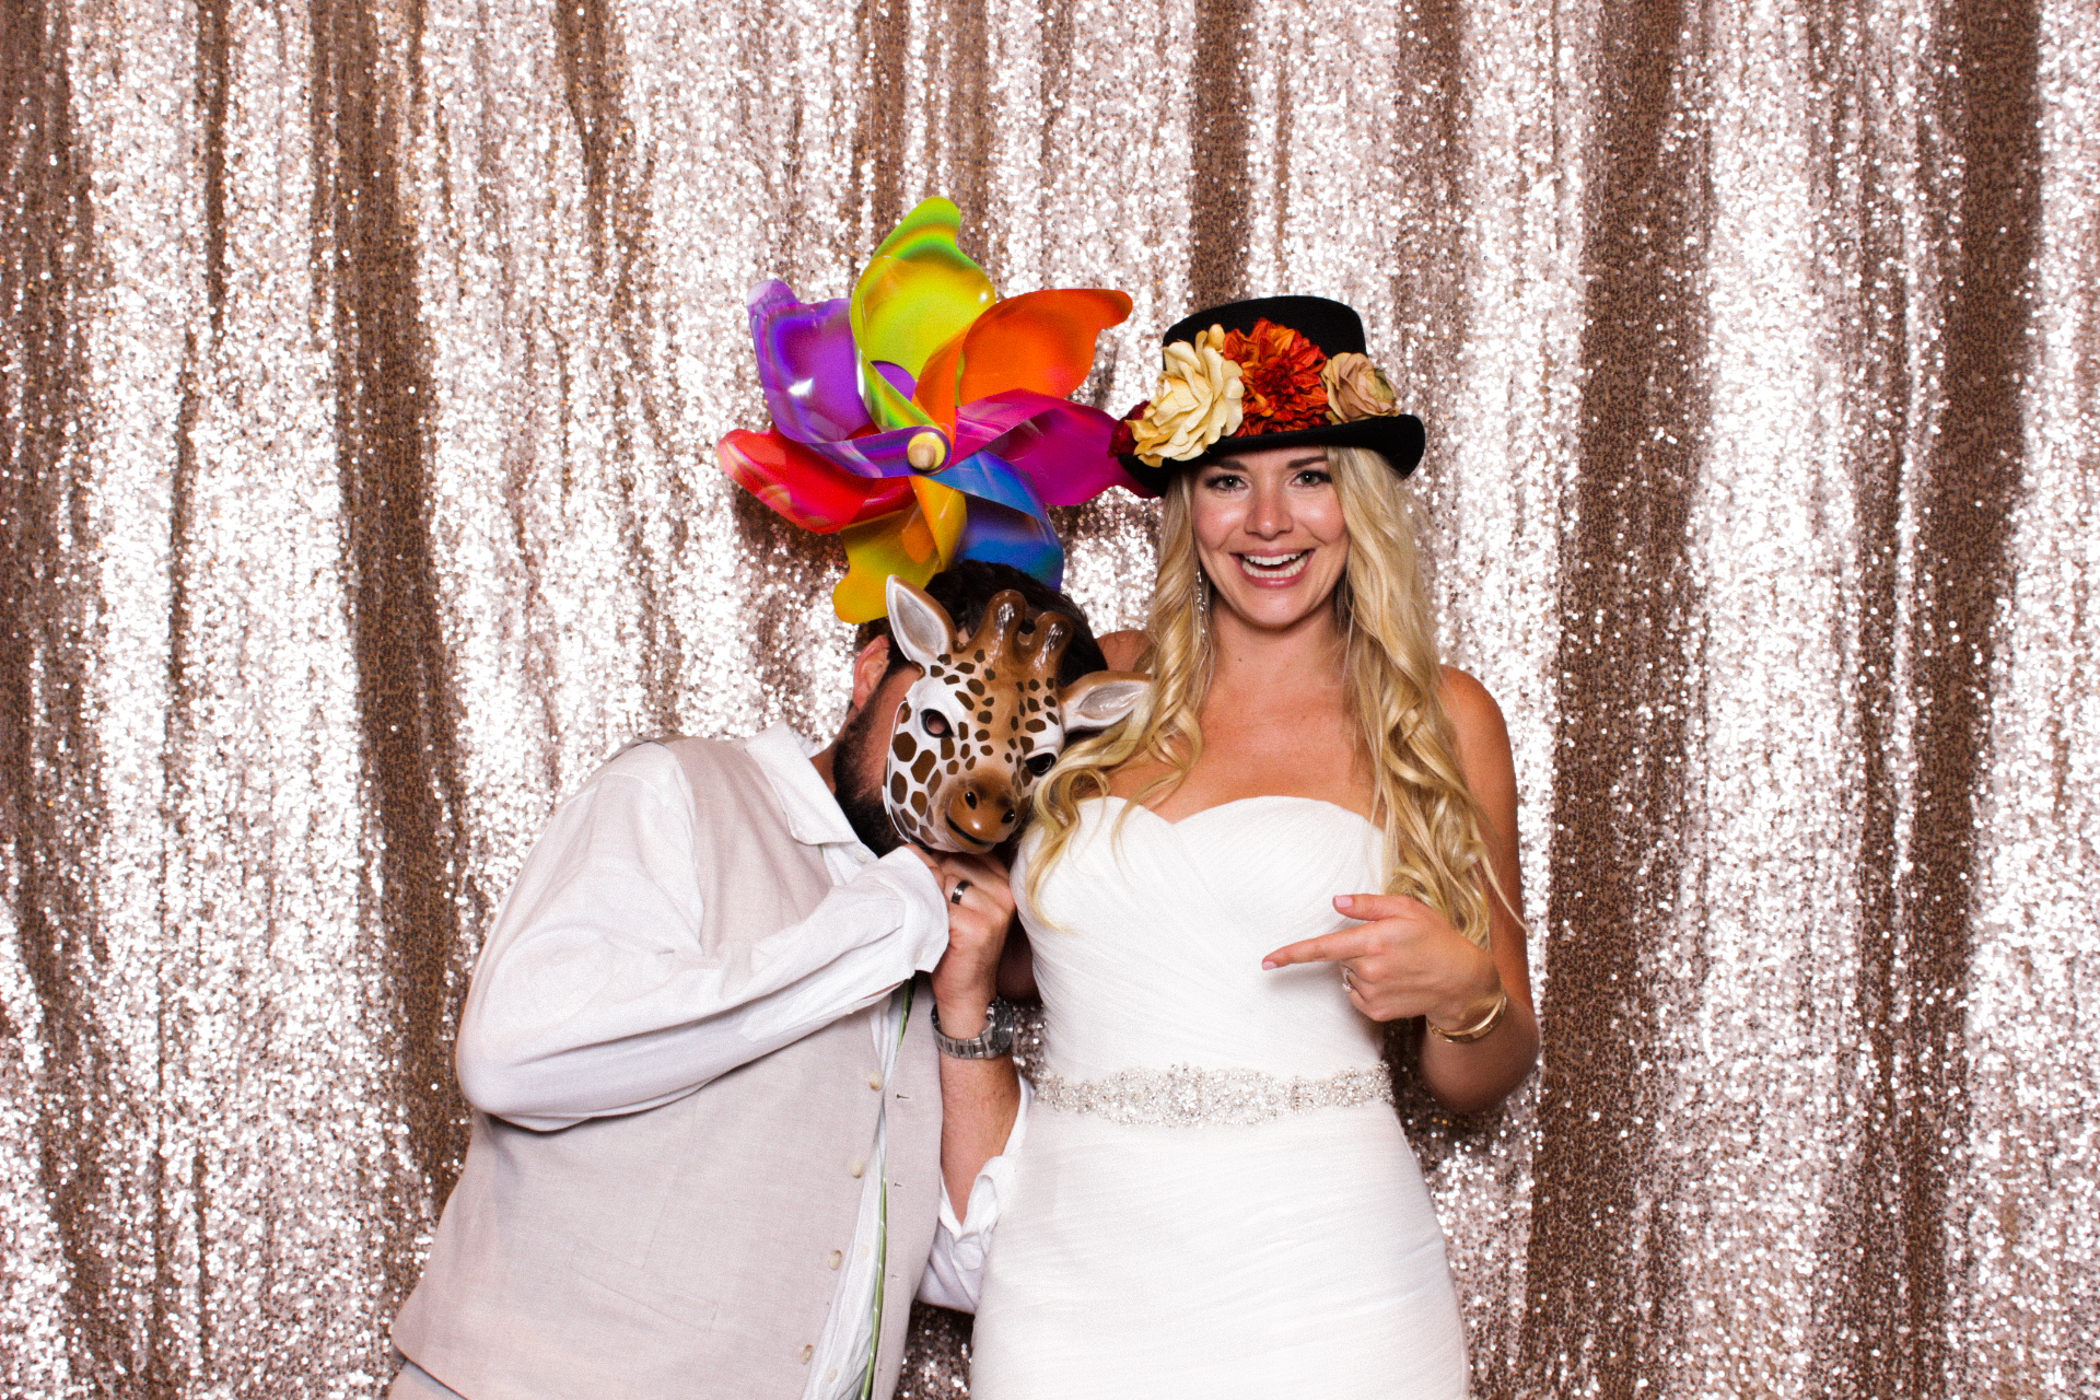 The_Reverie_Booth-Boca_Raton_Photobooth-Wedding_Photobooth_Florida-Florida_Photobooth_Rental-Wedding_Photobooth-078.jpg